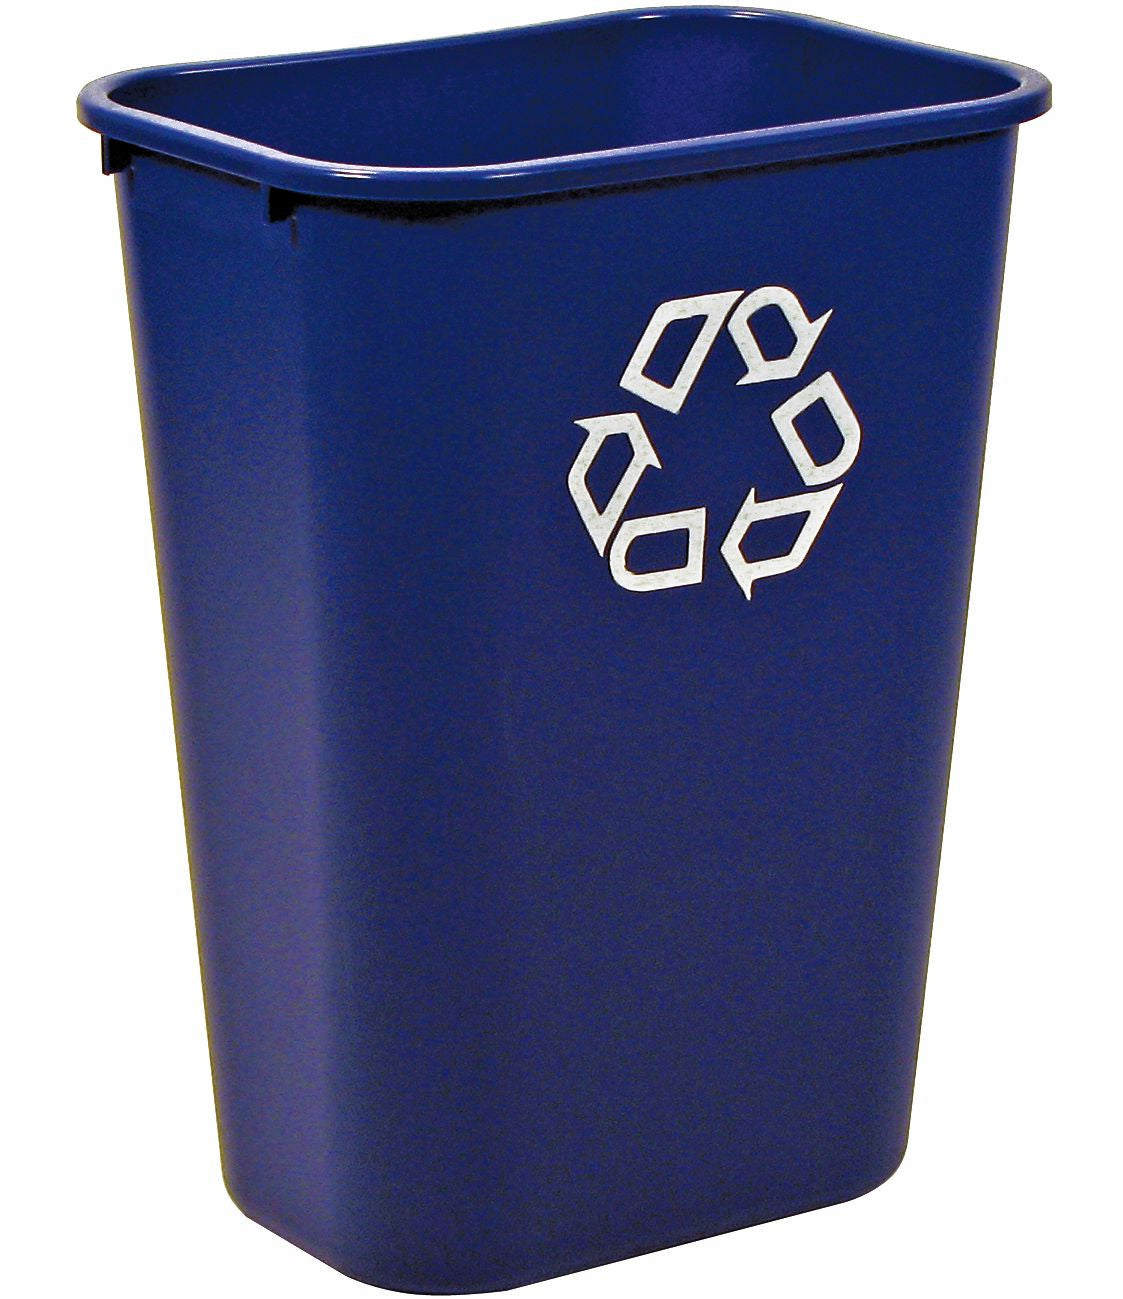 RECYCLING CONT. 41¼qt BLUE W/UNIVERSAL RECYCLE SYMBOL